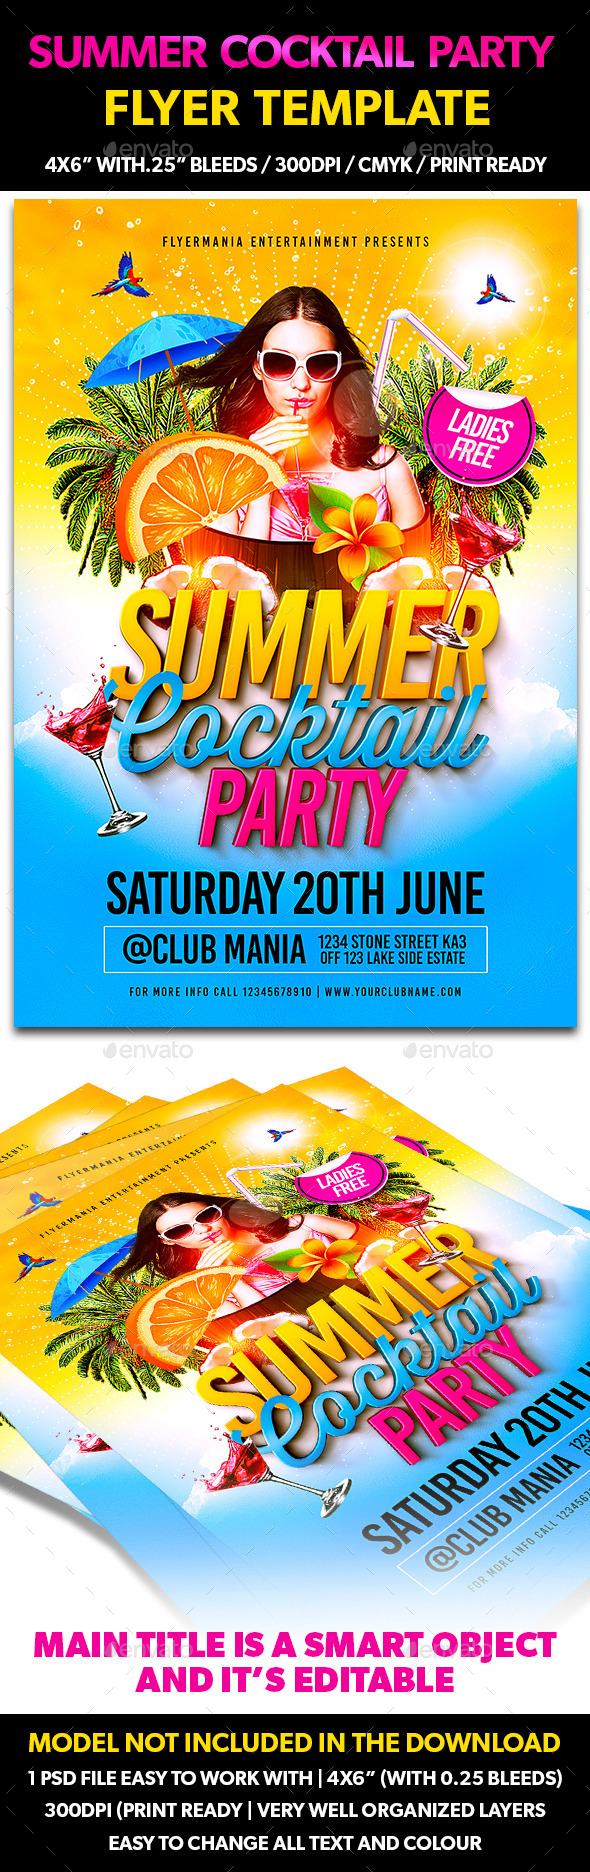 GraphicRiver Summer Cocktail Party Flyer Template 11149492